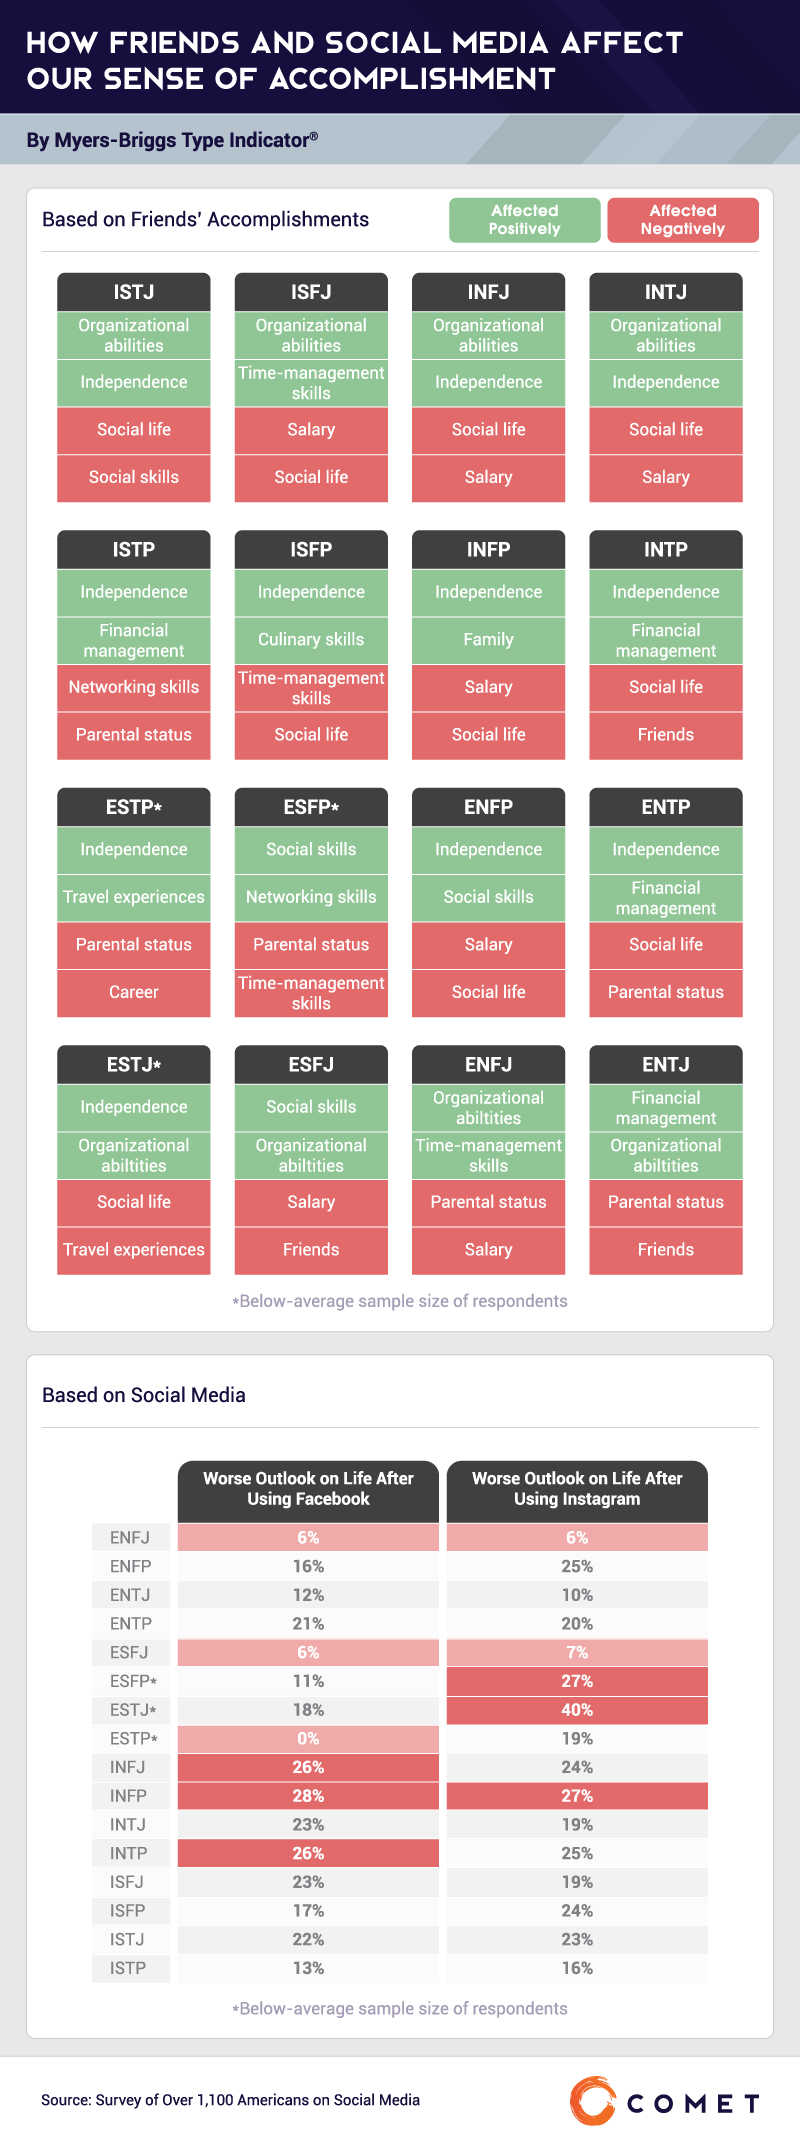 How Friends and Social Media Affect Our Sense of Accomplishment By Myers-Briggs Type Indicator